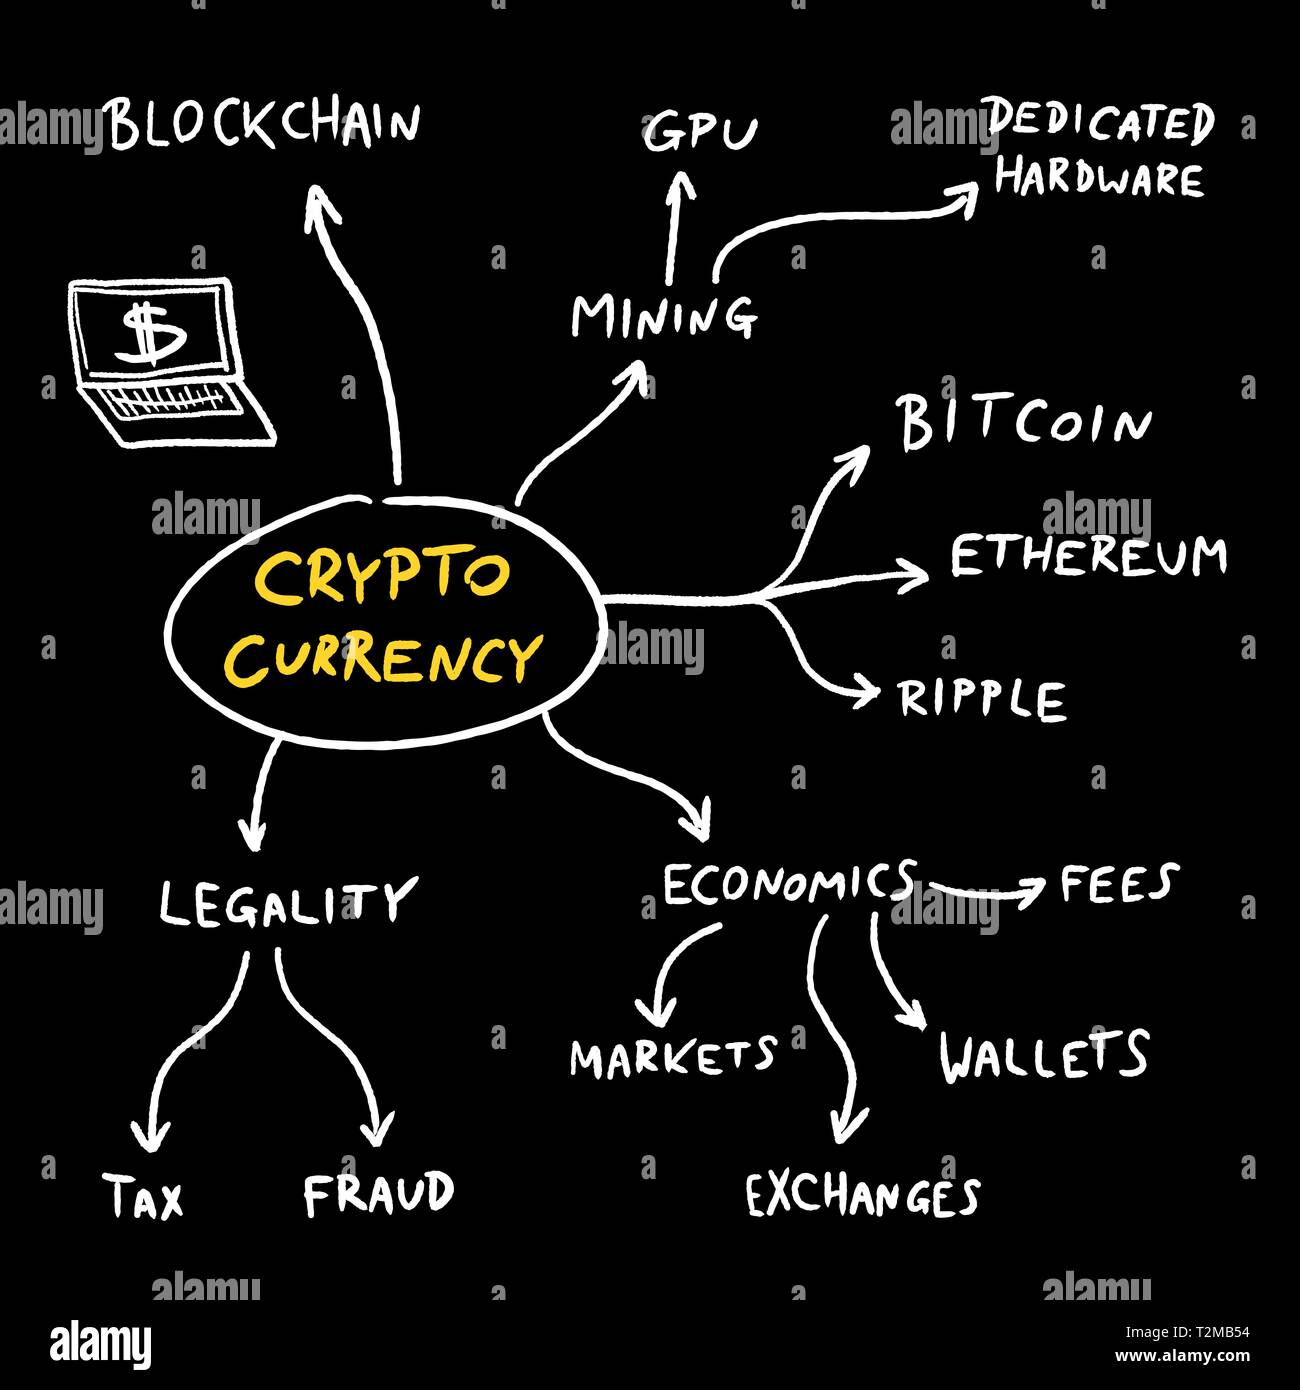 Crypto currency mind map - blockchain business problems and issues. Vector graphics. - Stock Vector